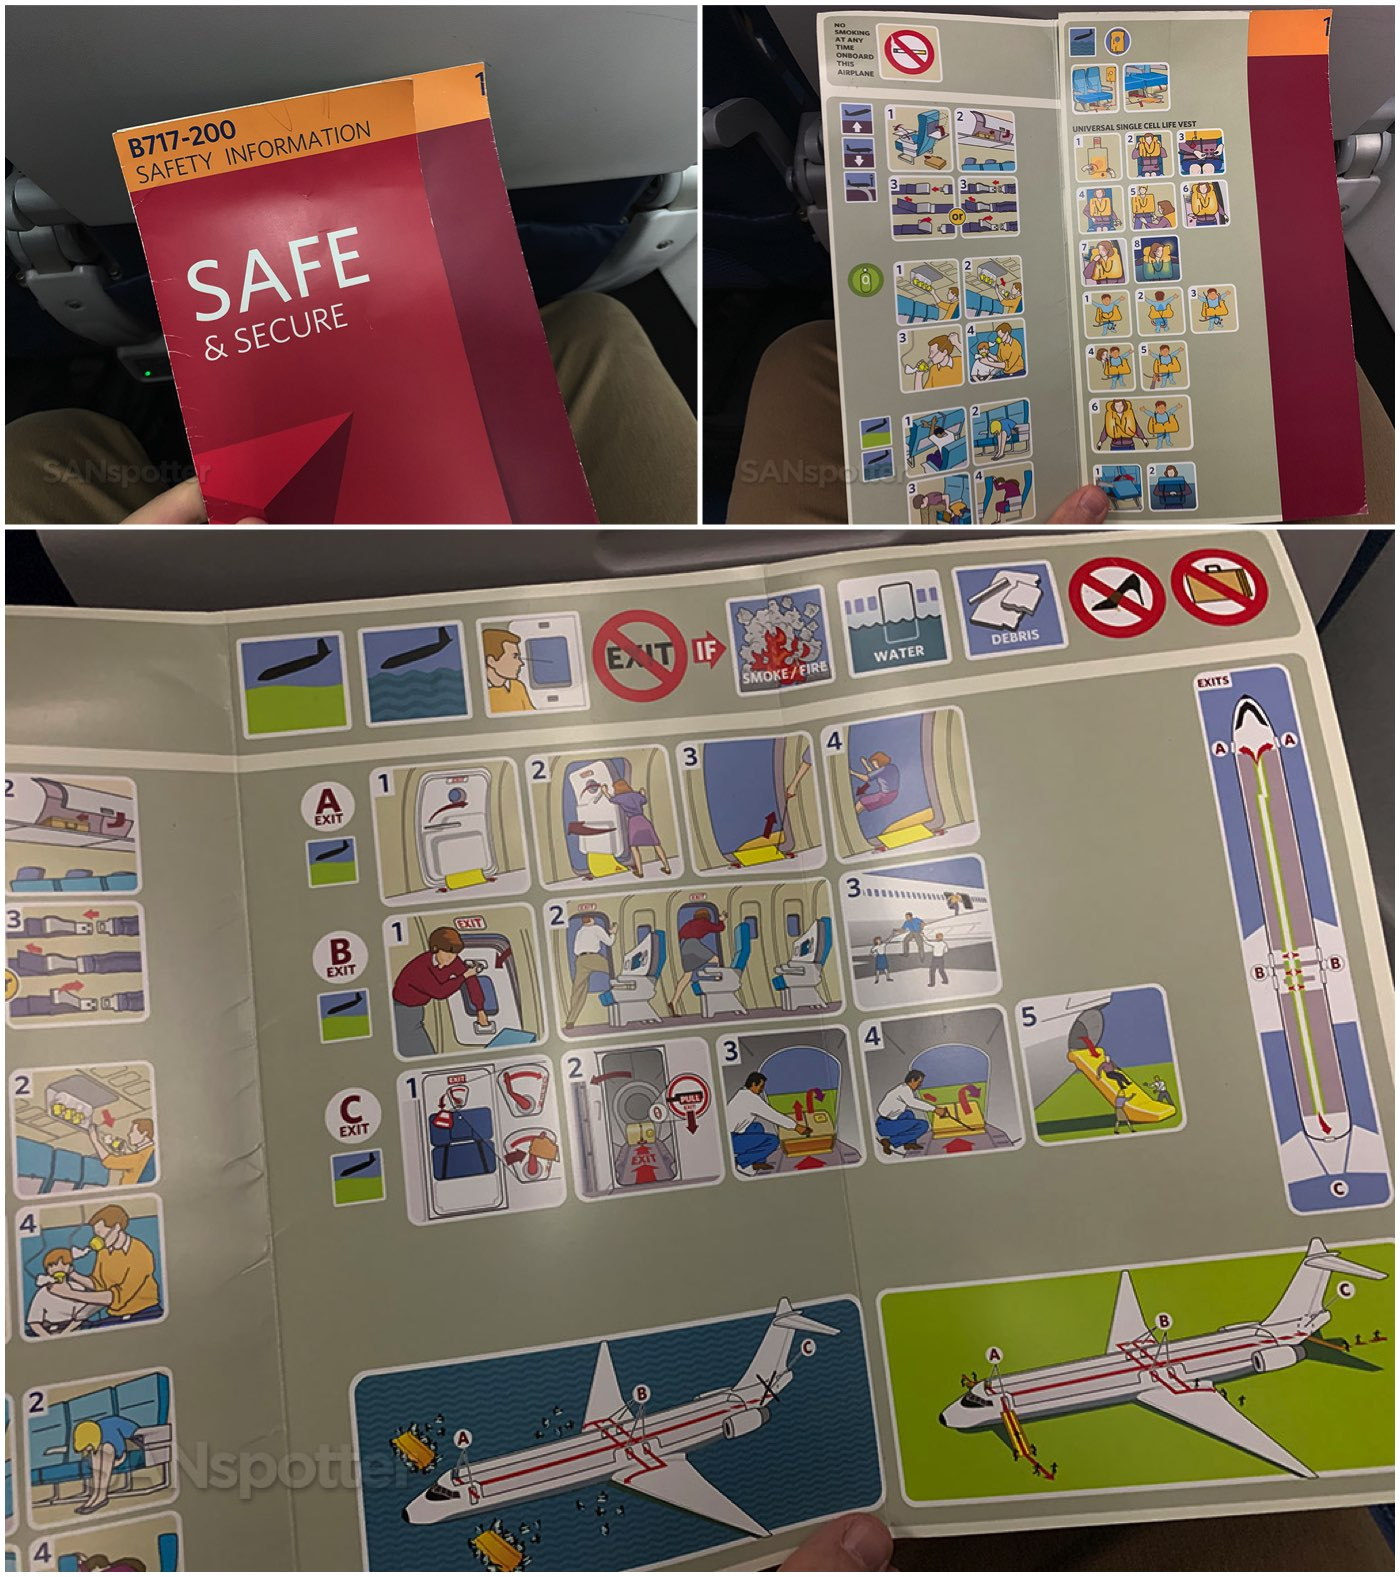 delta air lines 717-200 safety card